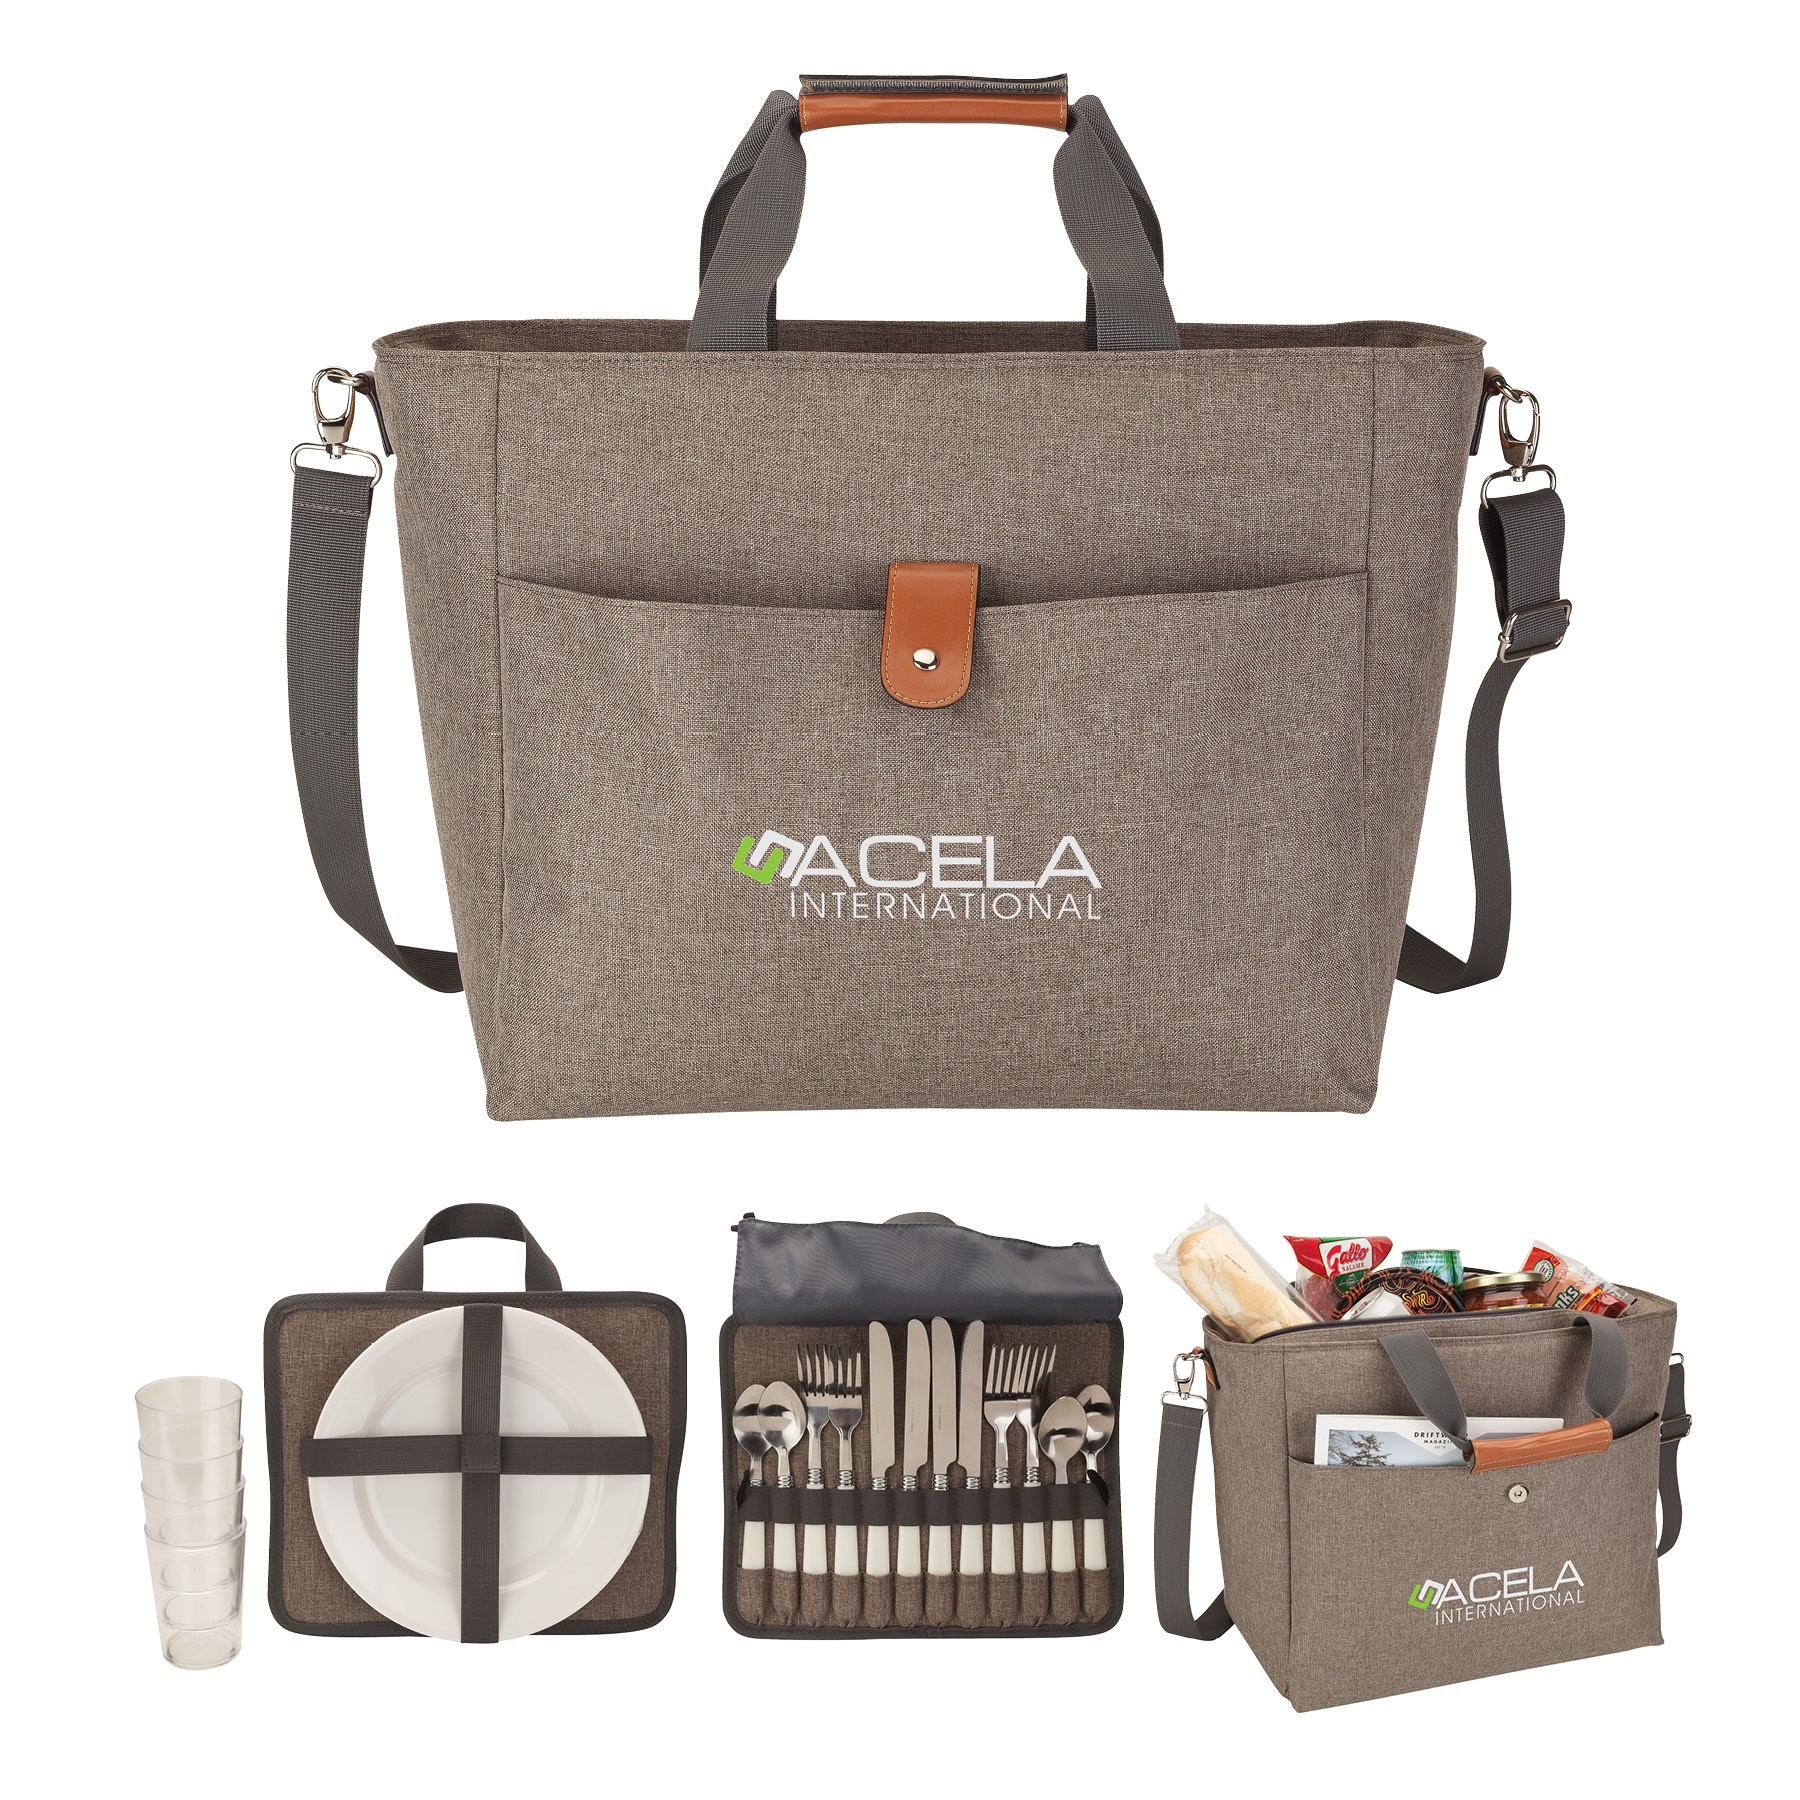 Del Mar 4 Person Picnic Carry Set & Cooler Tote Bag